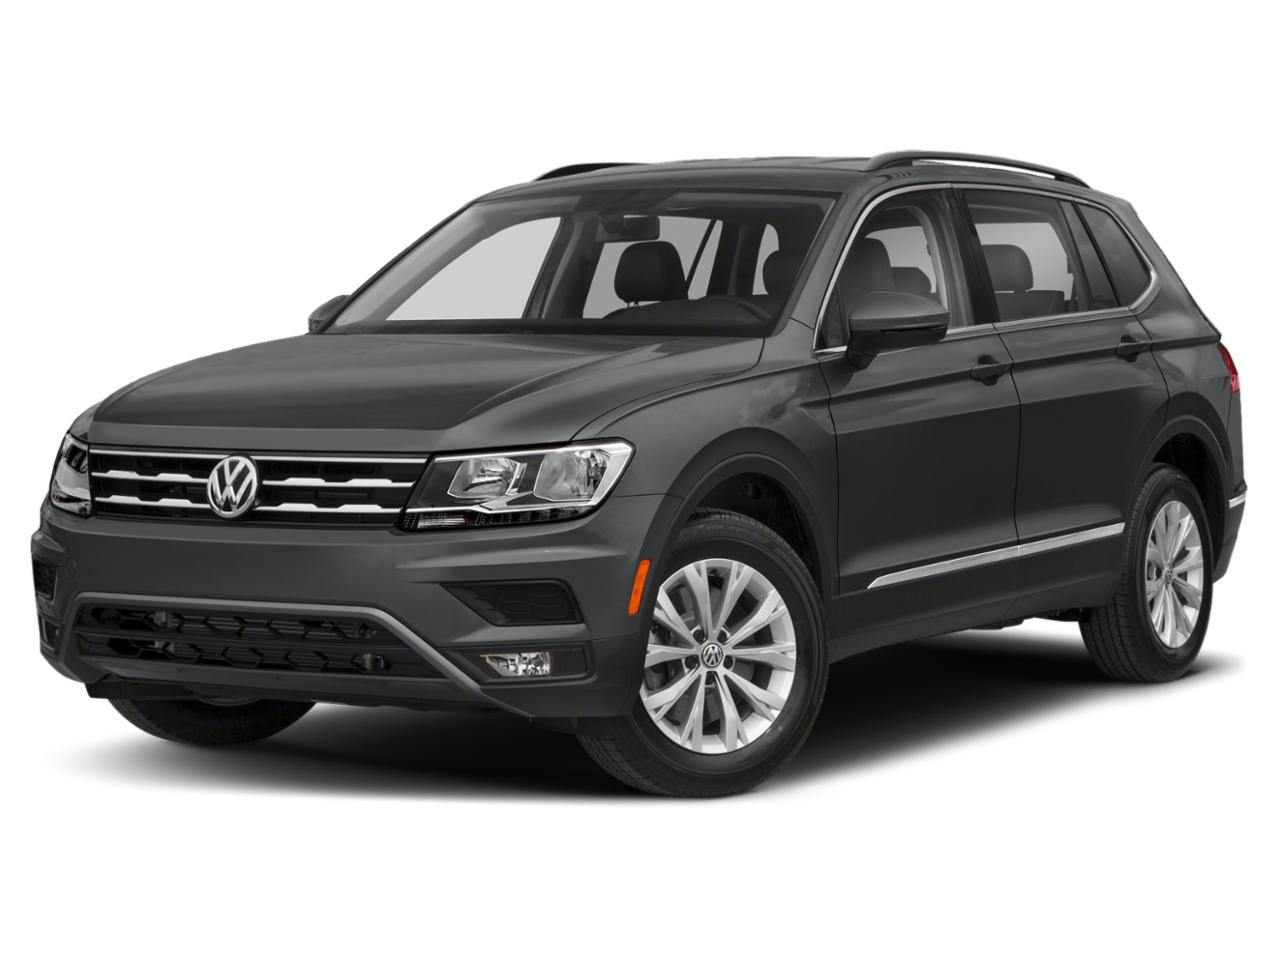 2018 Volkswagen Tiguan Vehicle Photo in Oshkosh, WI 54904